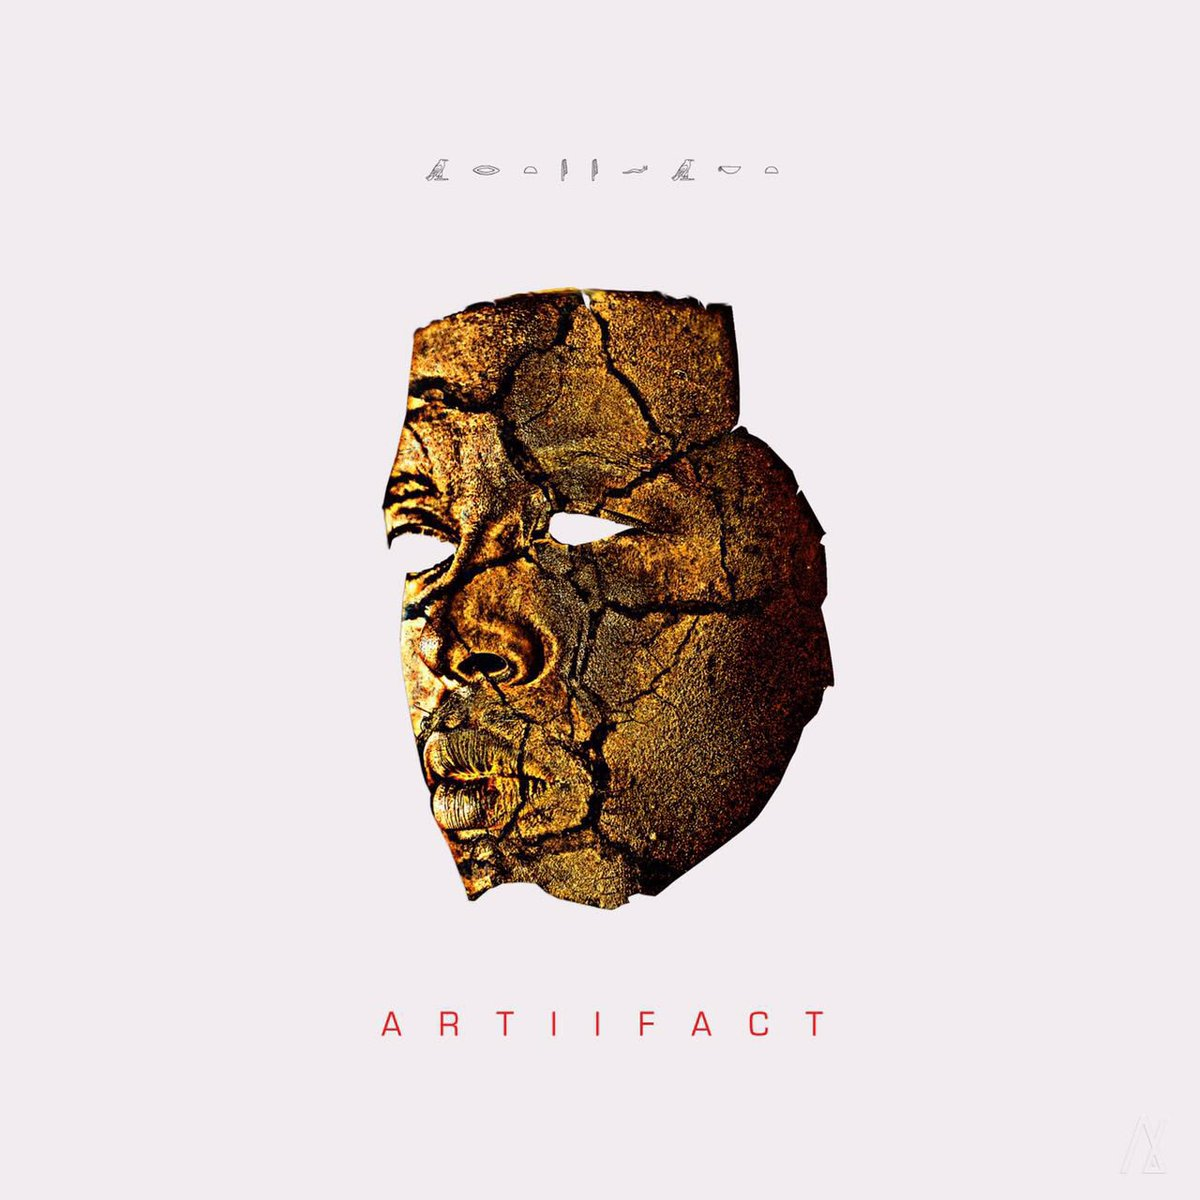 Dearly beloved the day has come!  #ARTIIFACT is here https://t.co/vKrhm61HNU   Bless up! https://t.co/xRSXBZjrcj